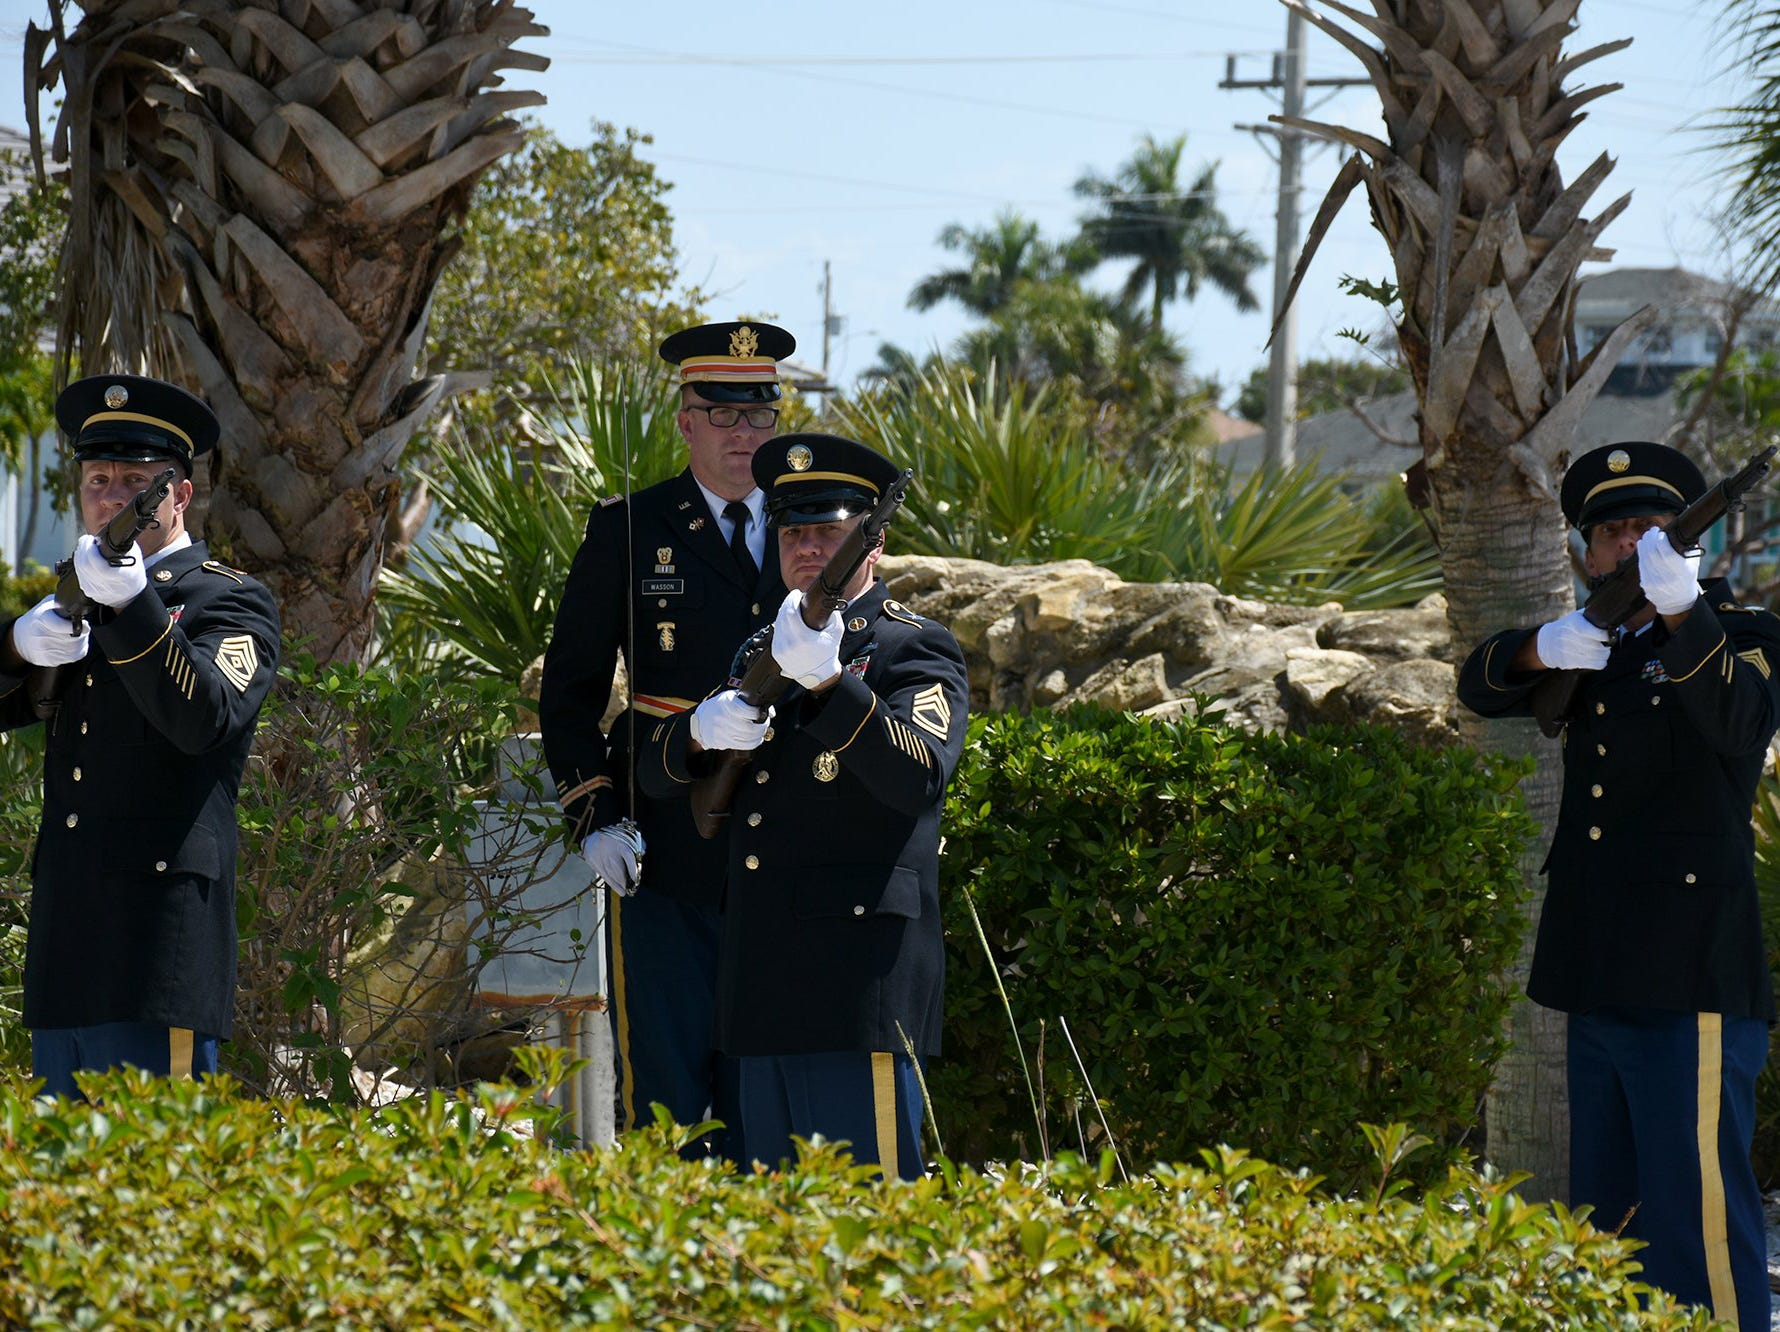 An Army honor guard fires three volleys to honor Herb Savage, a retired colonel. The life of iconic island architect Herb Savage was celebrated in a ceremony Sunday afternoon at the Rose History Auditorium, with military honors and reminisces from family and friends.